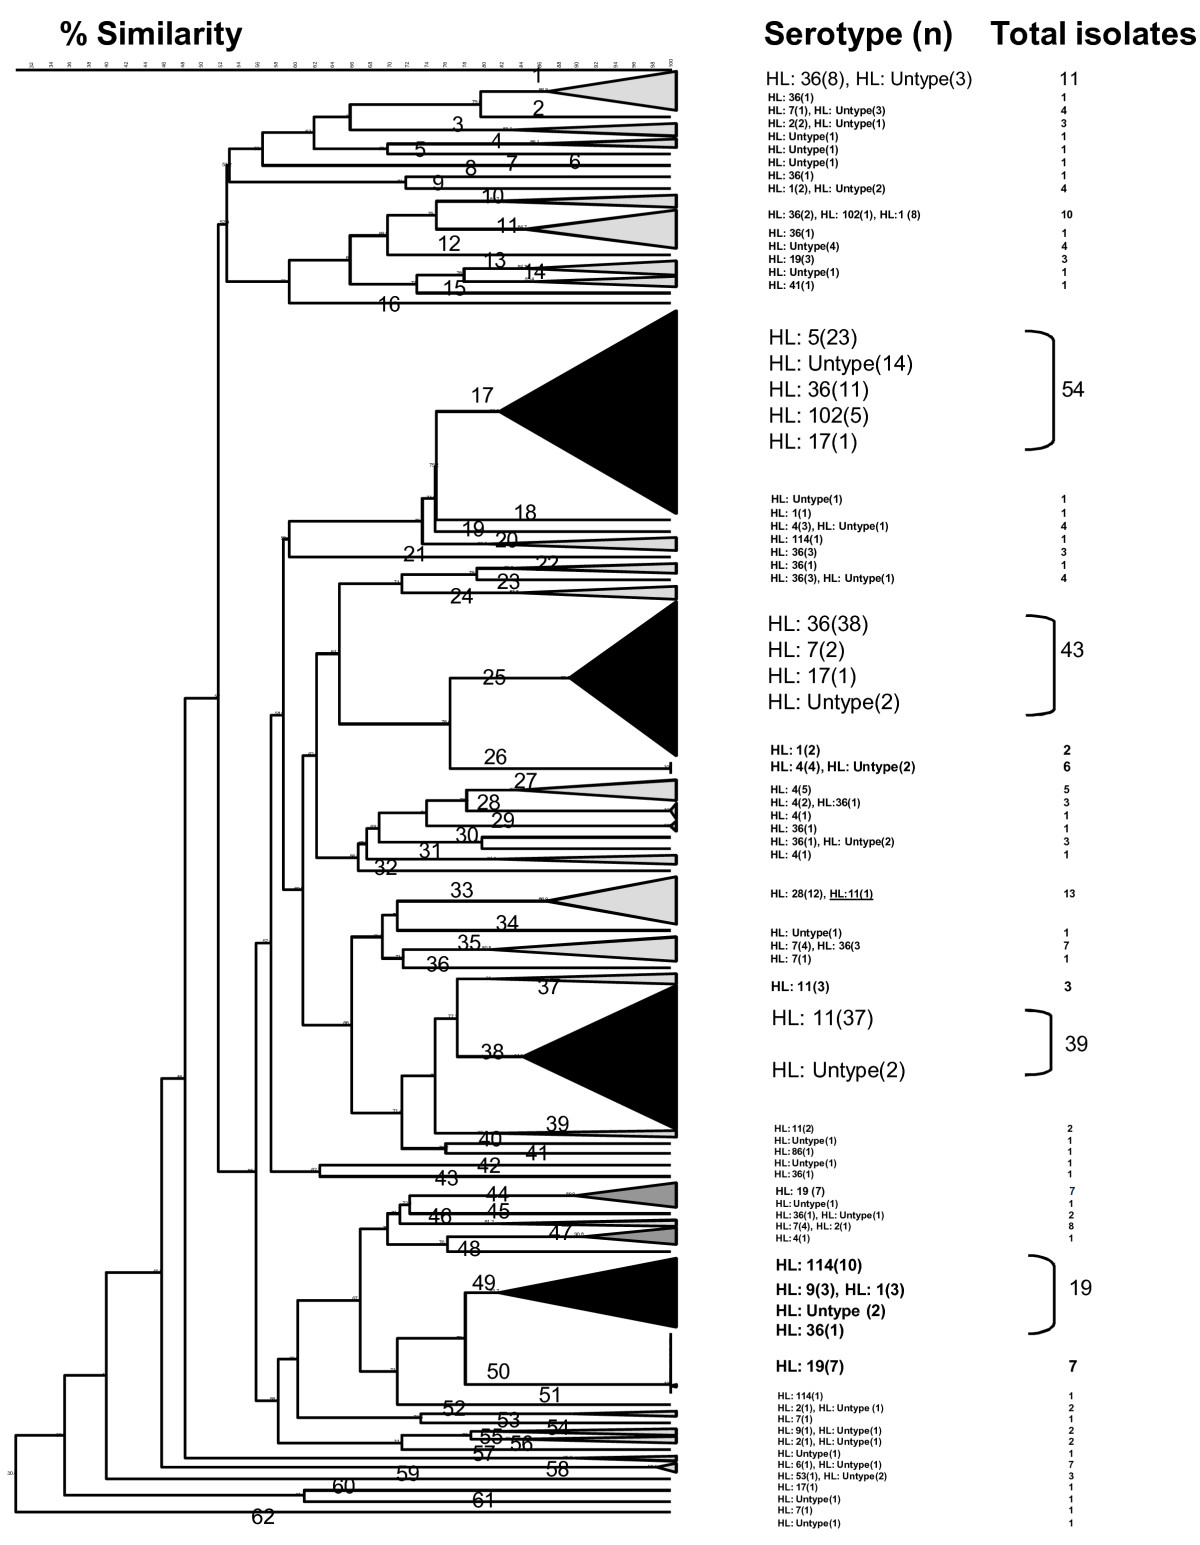 http://static-content.springer.com/image/art%3A10.1186%2F1757-4749-2-15/MediaObjects/13099_2010_Article_41_Fig1_HTML.jpg